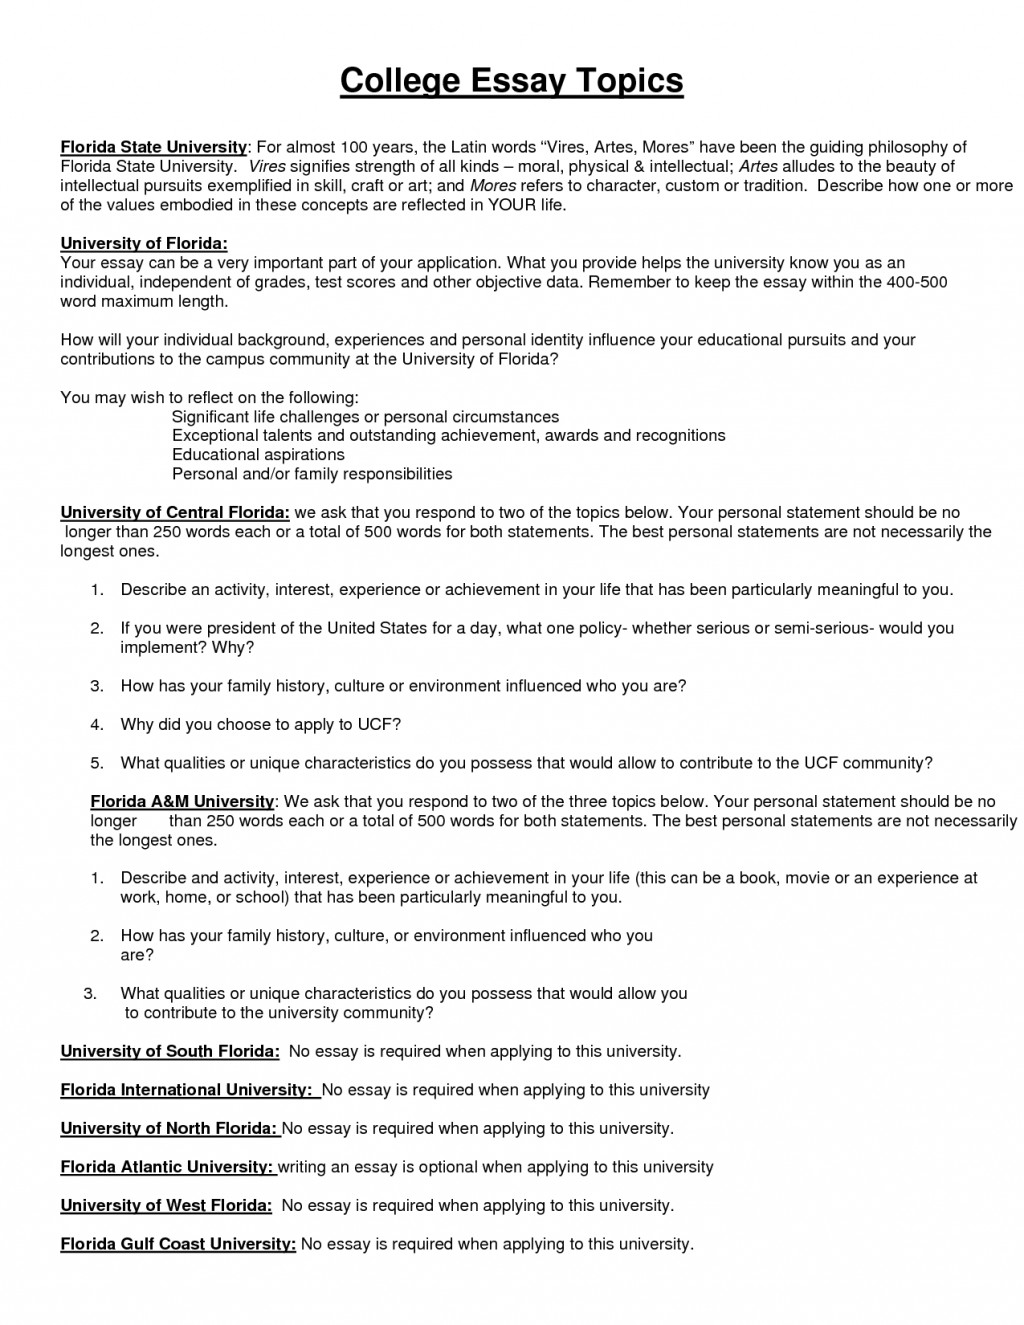 006 Free Topic Essay Resume Examples Templates How To Write Good For College Example Best Surprising Topics Research Paper Student High School Argumentative Large